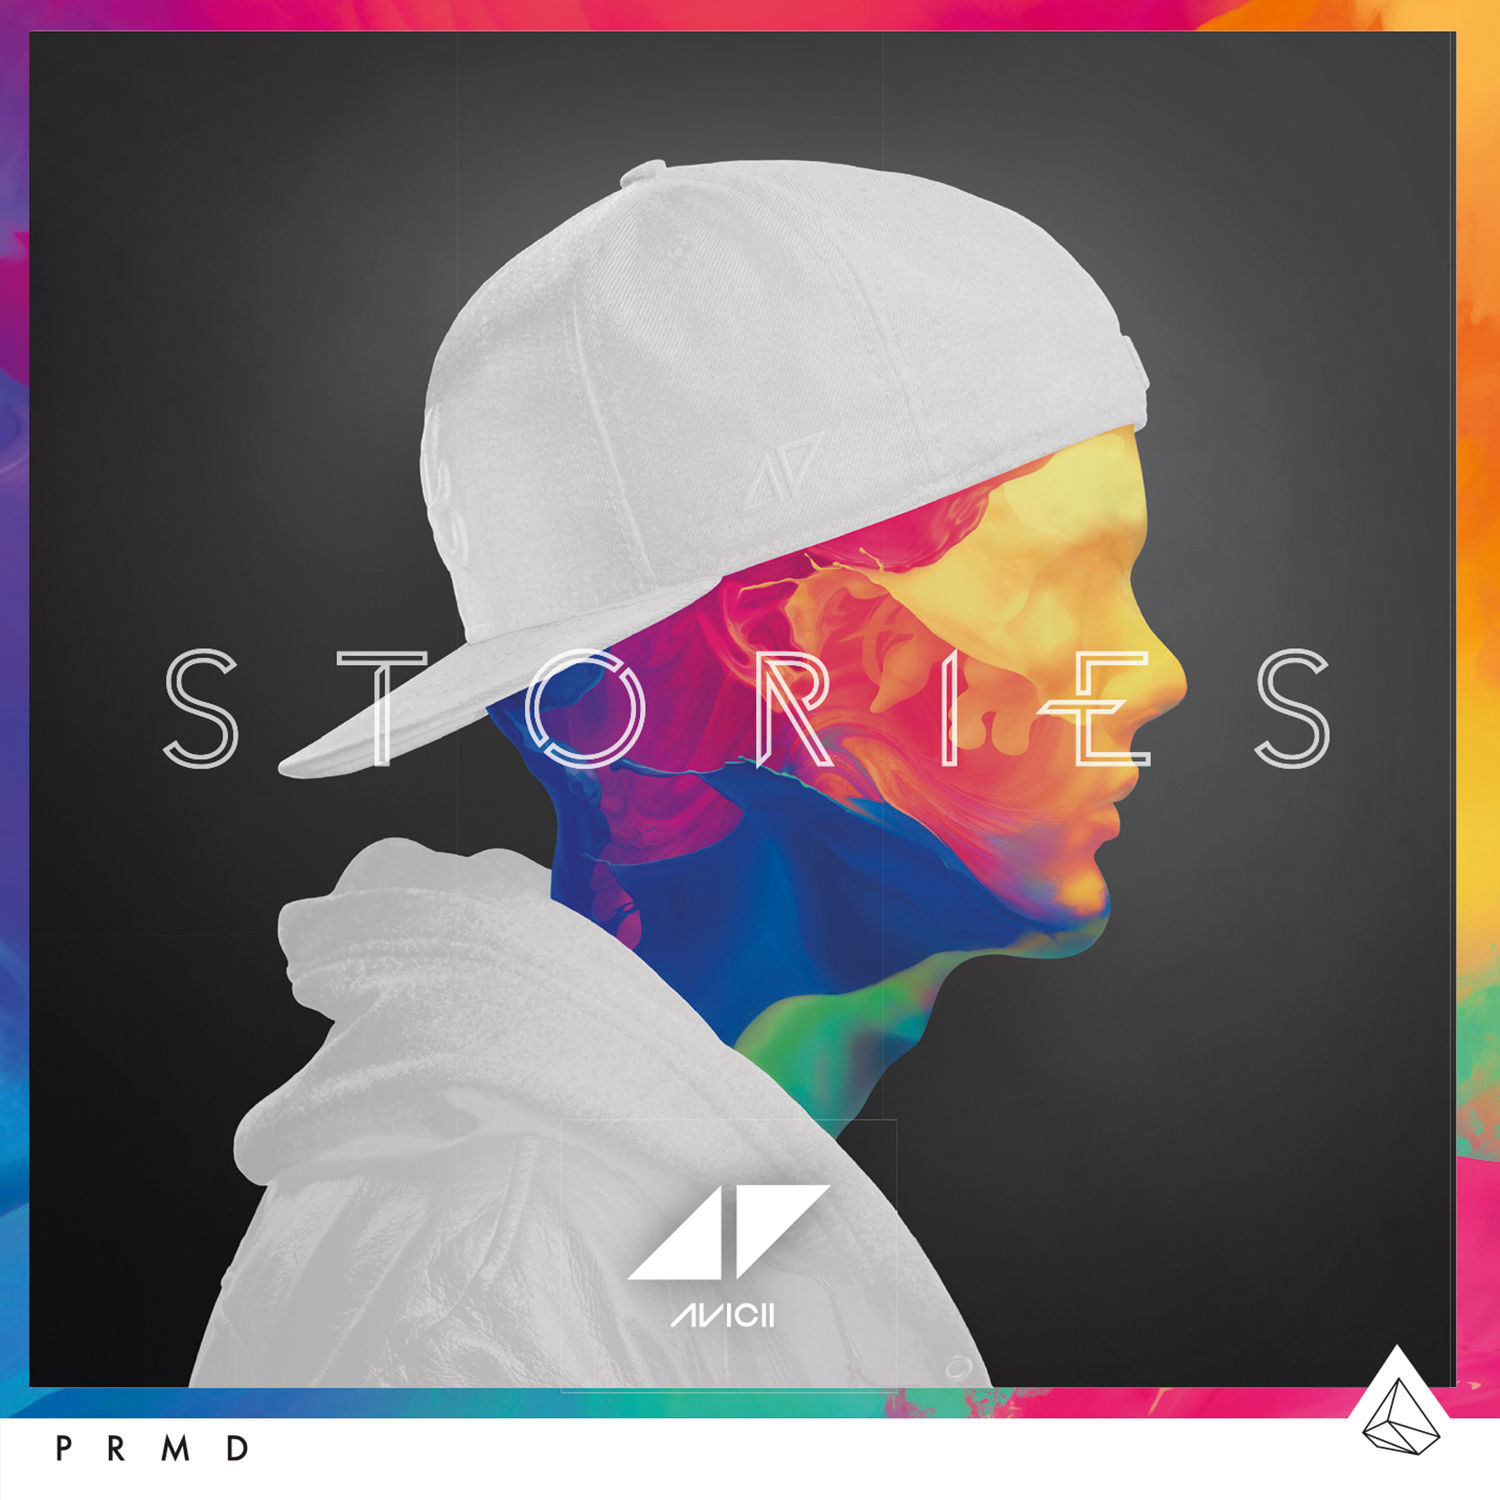 avicii, stories, waiting for love, pop music